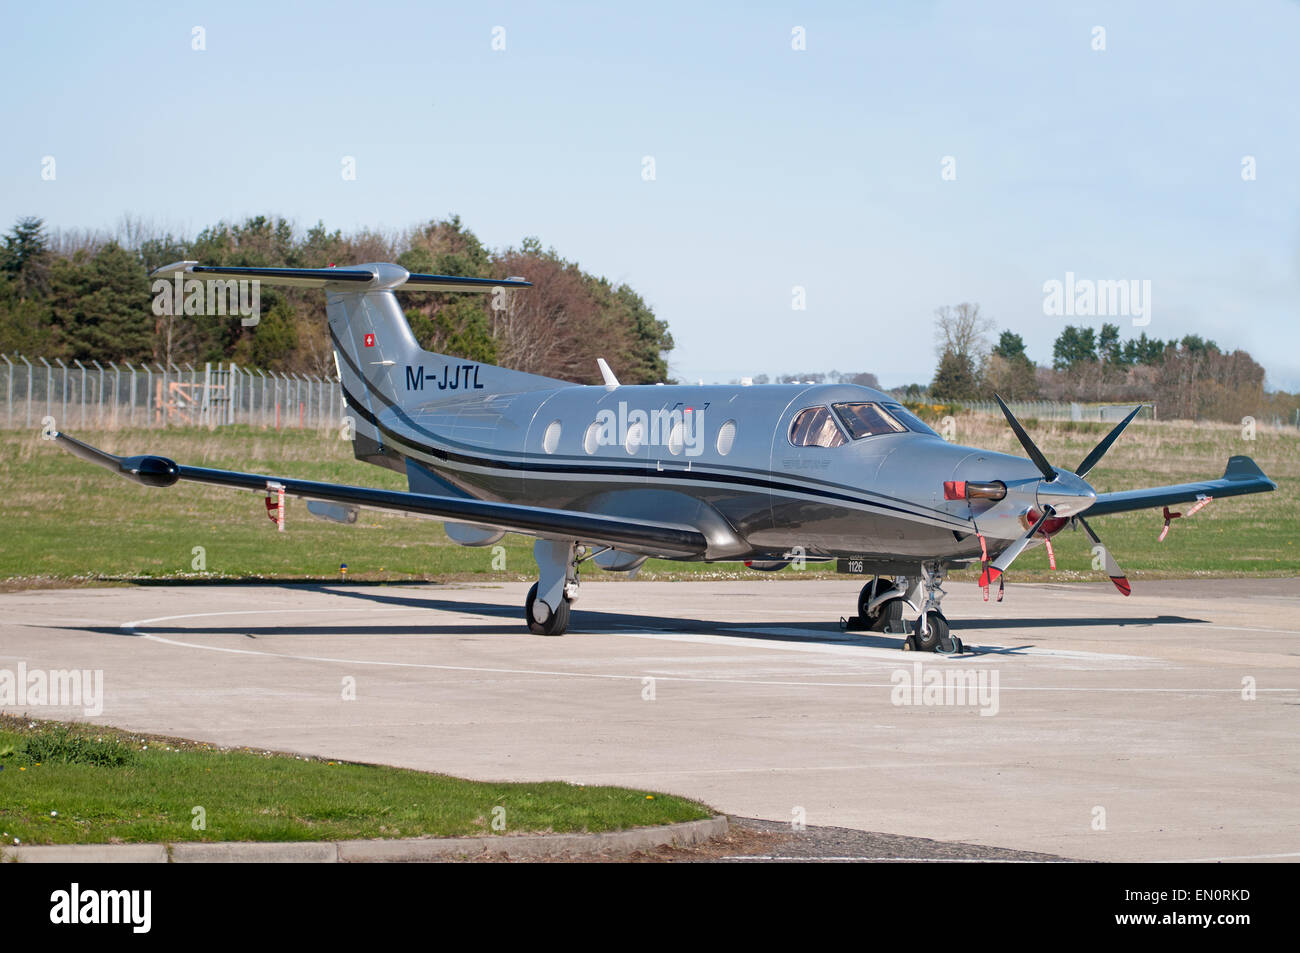 The Pilatus PC-12 is a single-engine turboprop passenger and cargo aircraft.  SCO 9695. - Stock Image